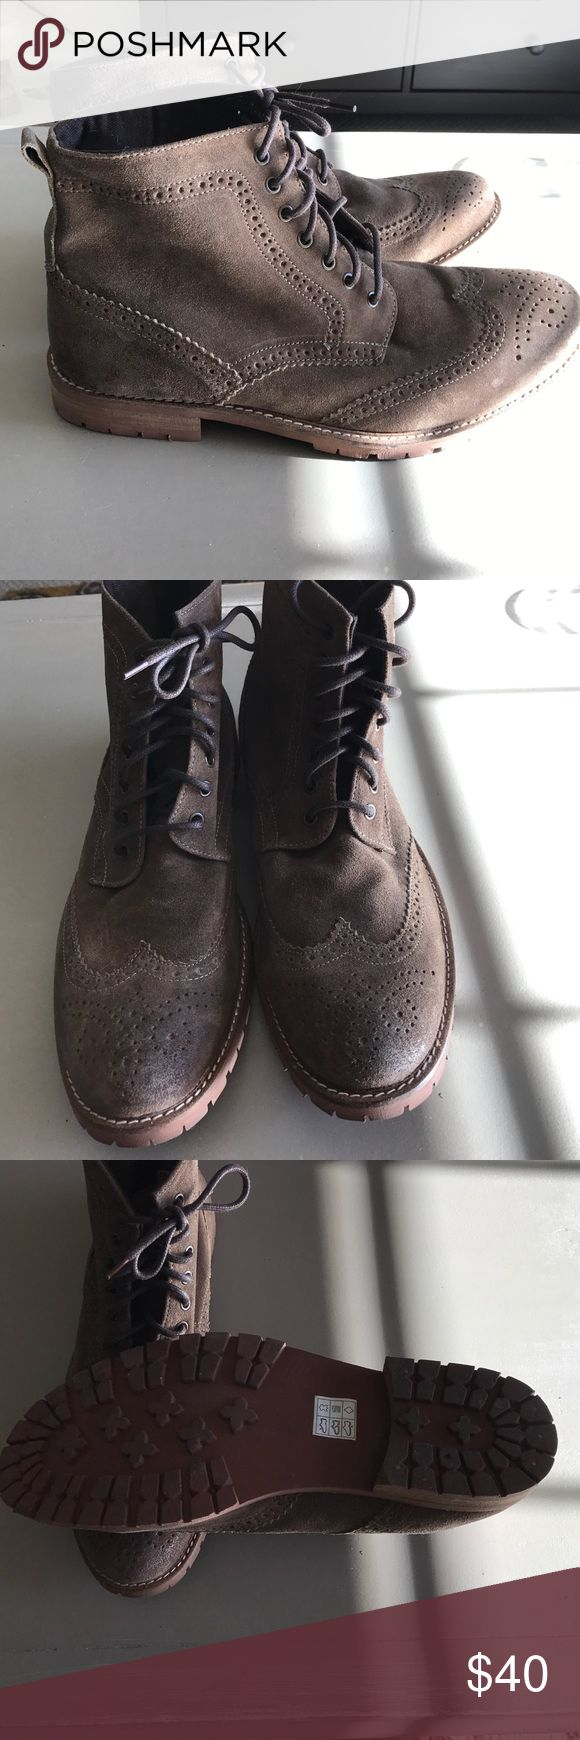 Men's suede wingtip boots Men's Studio Ink wingtip suede boots. Size 12. Work for just for one event for a couple hours. Studio Ink Shoes Boots